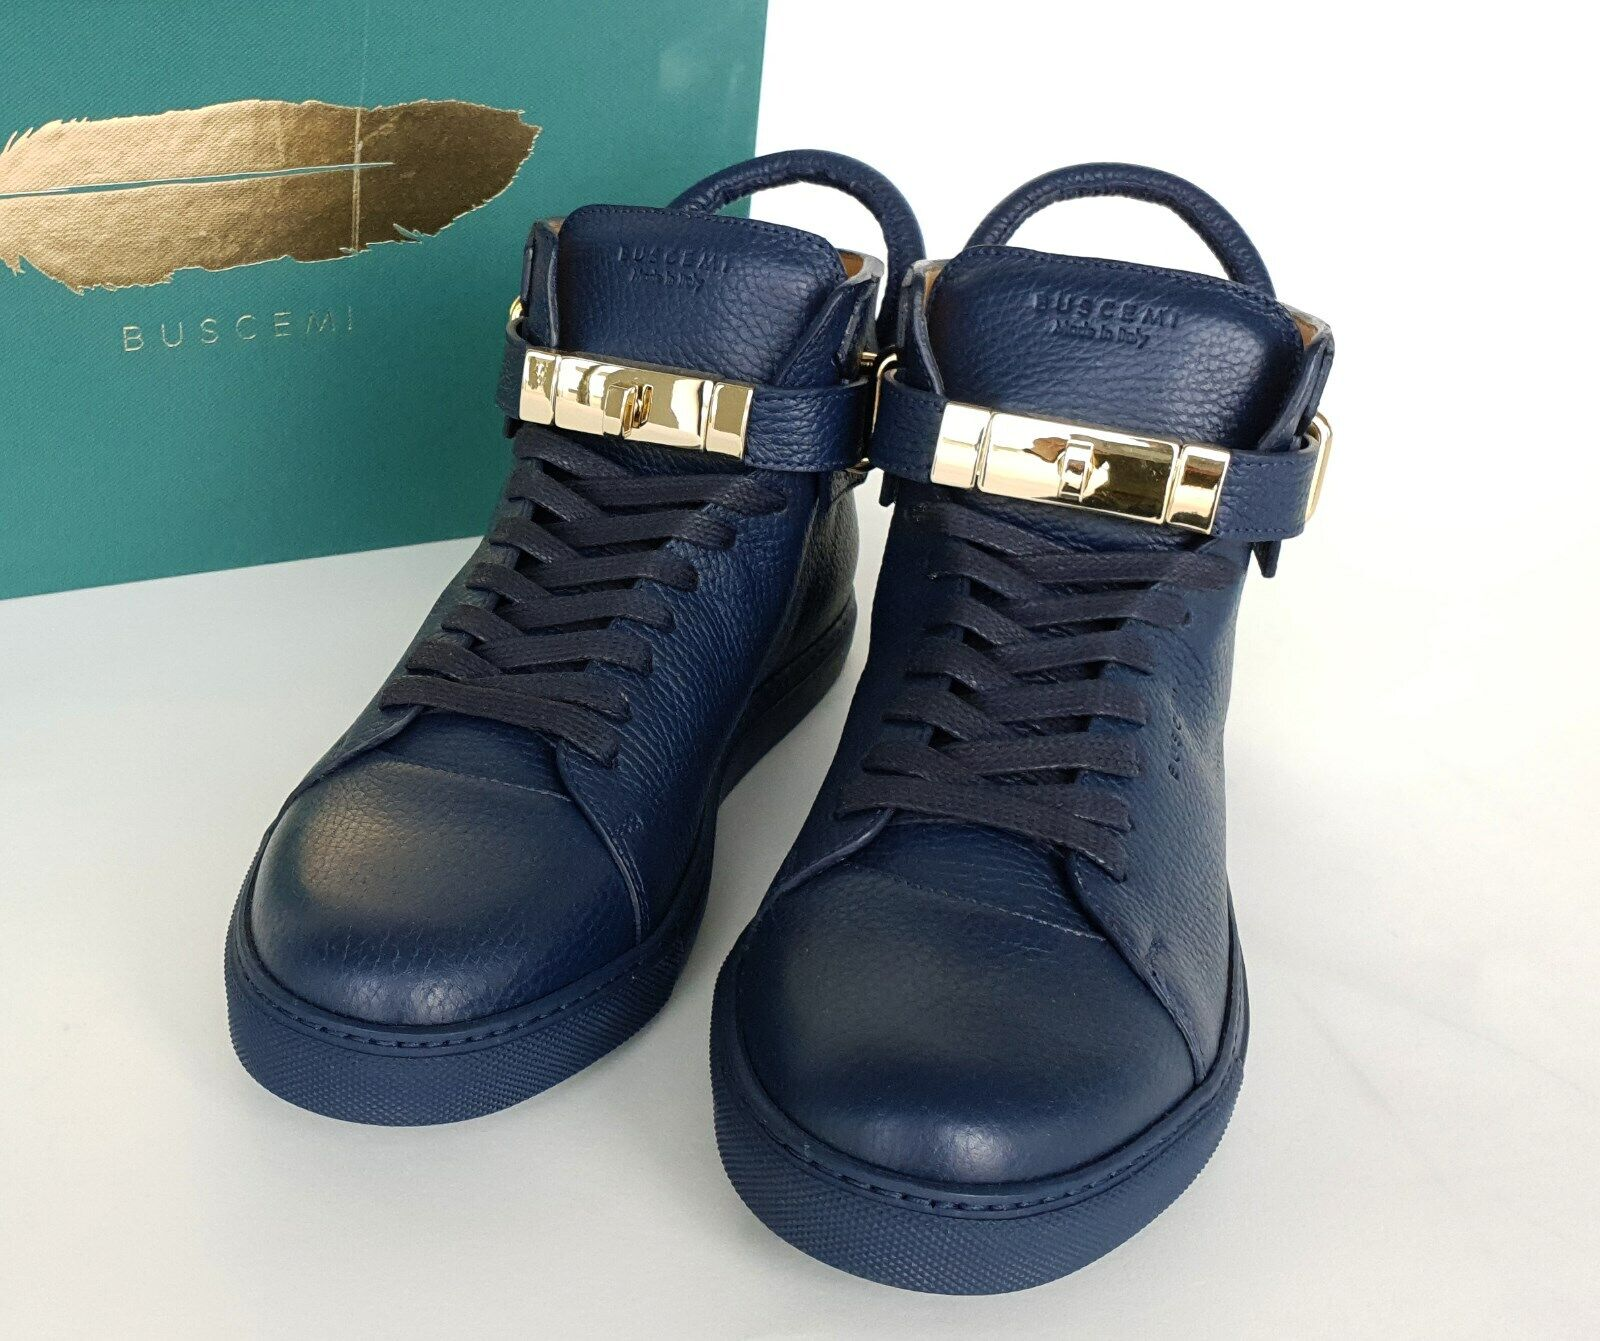 BUSCEMI 100 mm Oceano Bleu High-top baskets Made In  Taille US 10 EUR 43